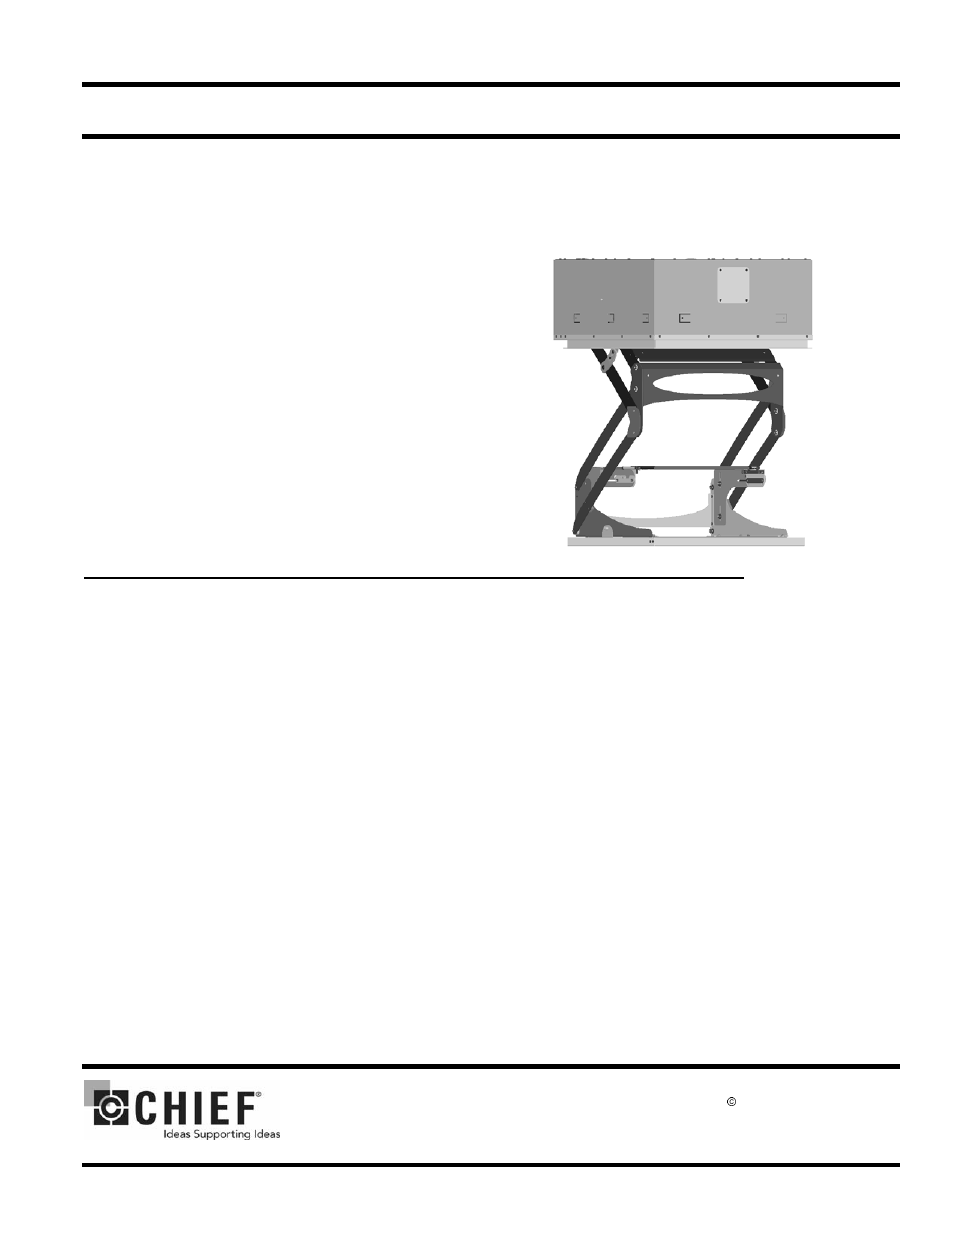 chief manufacturing electric ceiling lift sl 236 user manual 24 pages rh manualsdir com Medical Manufacturing Manufacturing by Hand